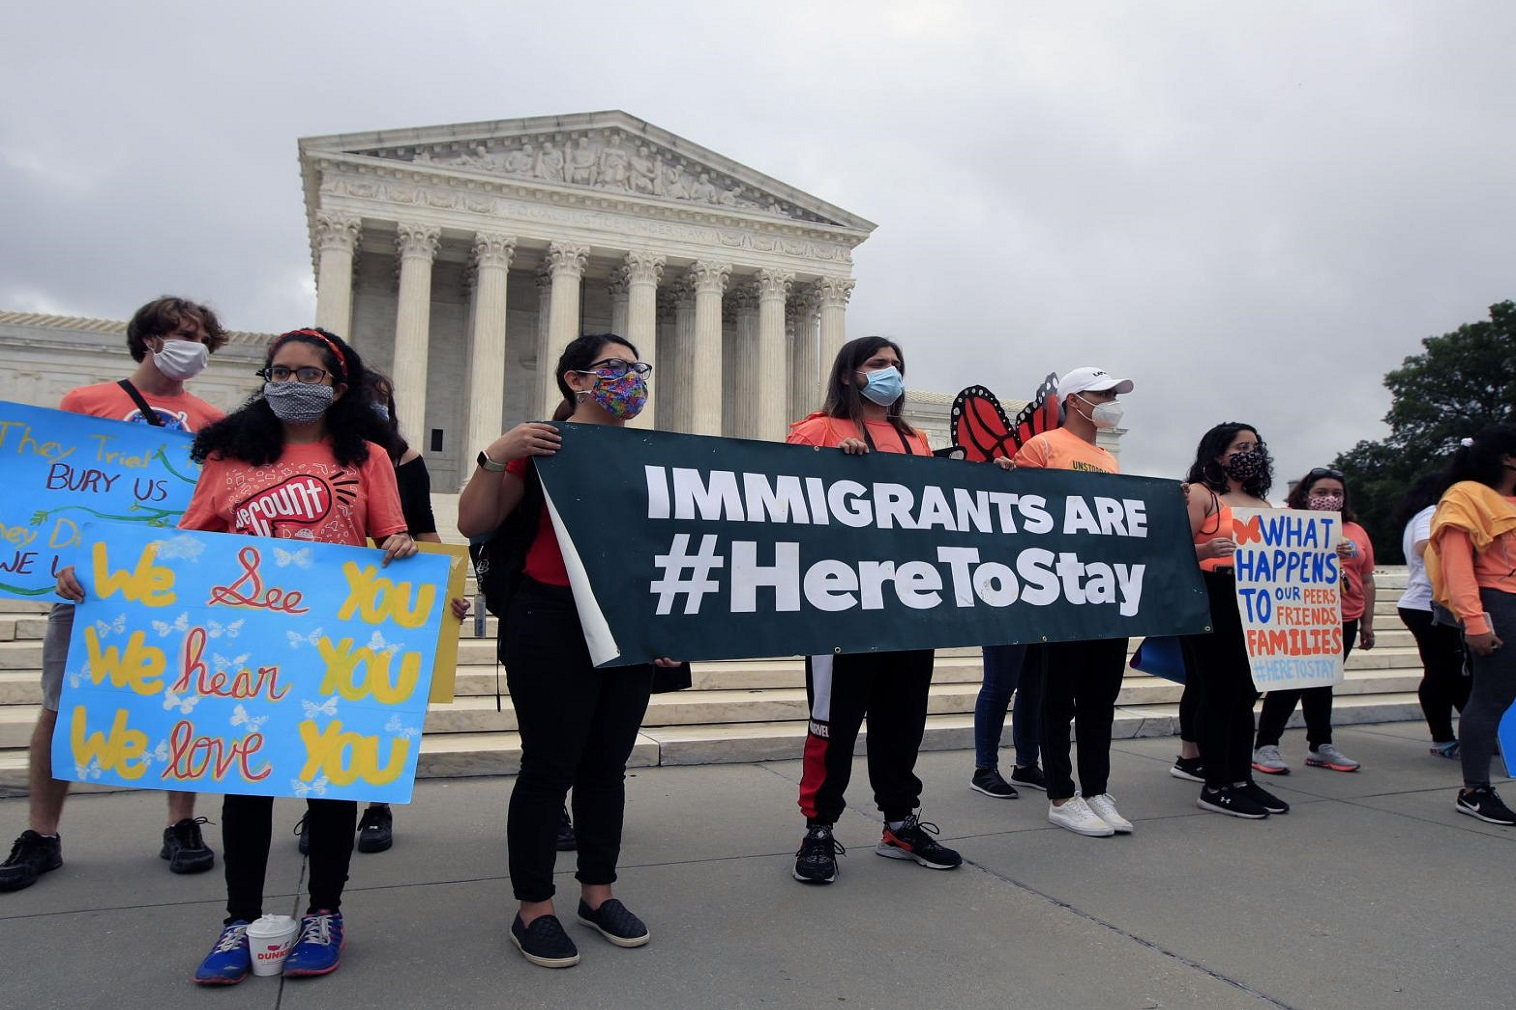 The program was created in 2012 by then-President Barack Obama to supply protections for qualified young immigrants to stay in the country and work or attend school.